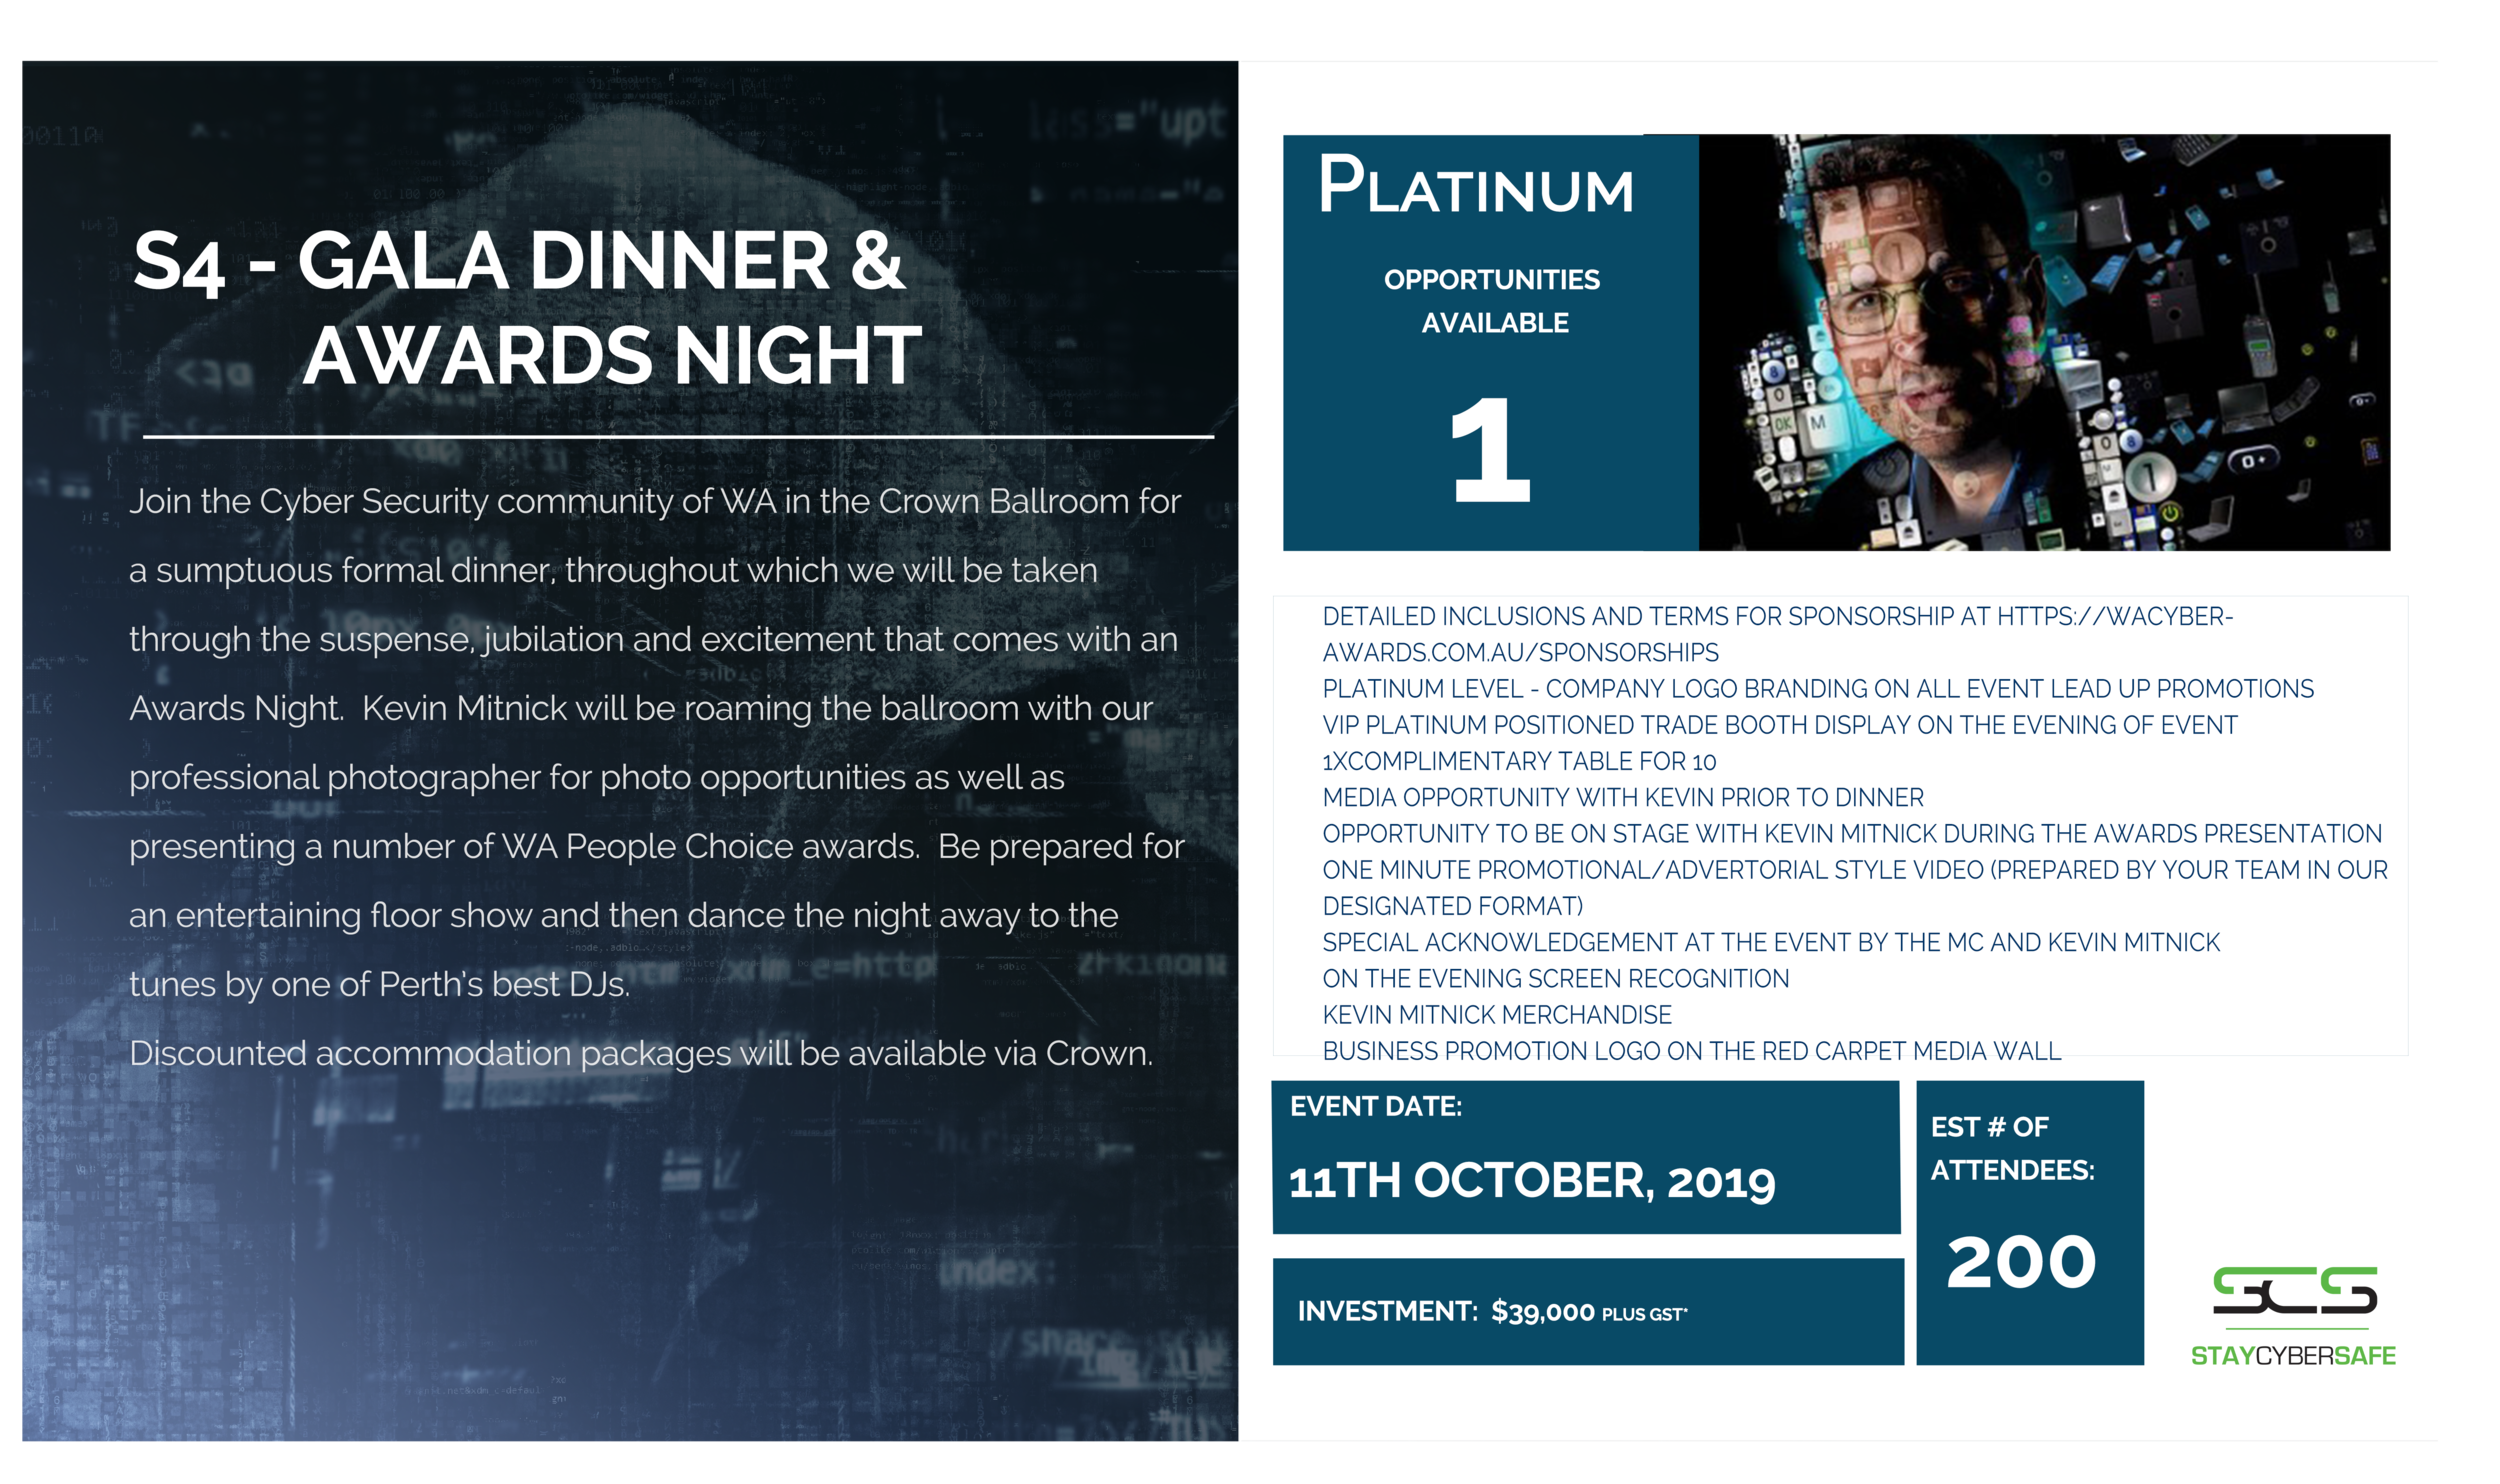 S4 - Gala Dinner & Awards Dinner - Black tie event to recognise the 'Superheroes' in the Cyber Security industry in Western Australia.Full description and list of sponsorship levels are available here.